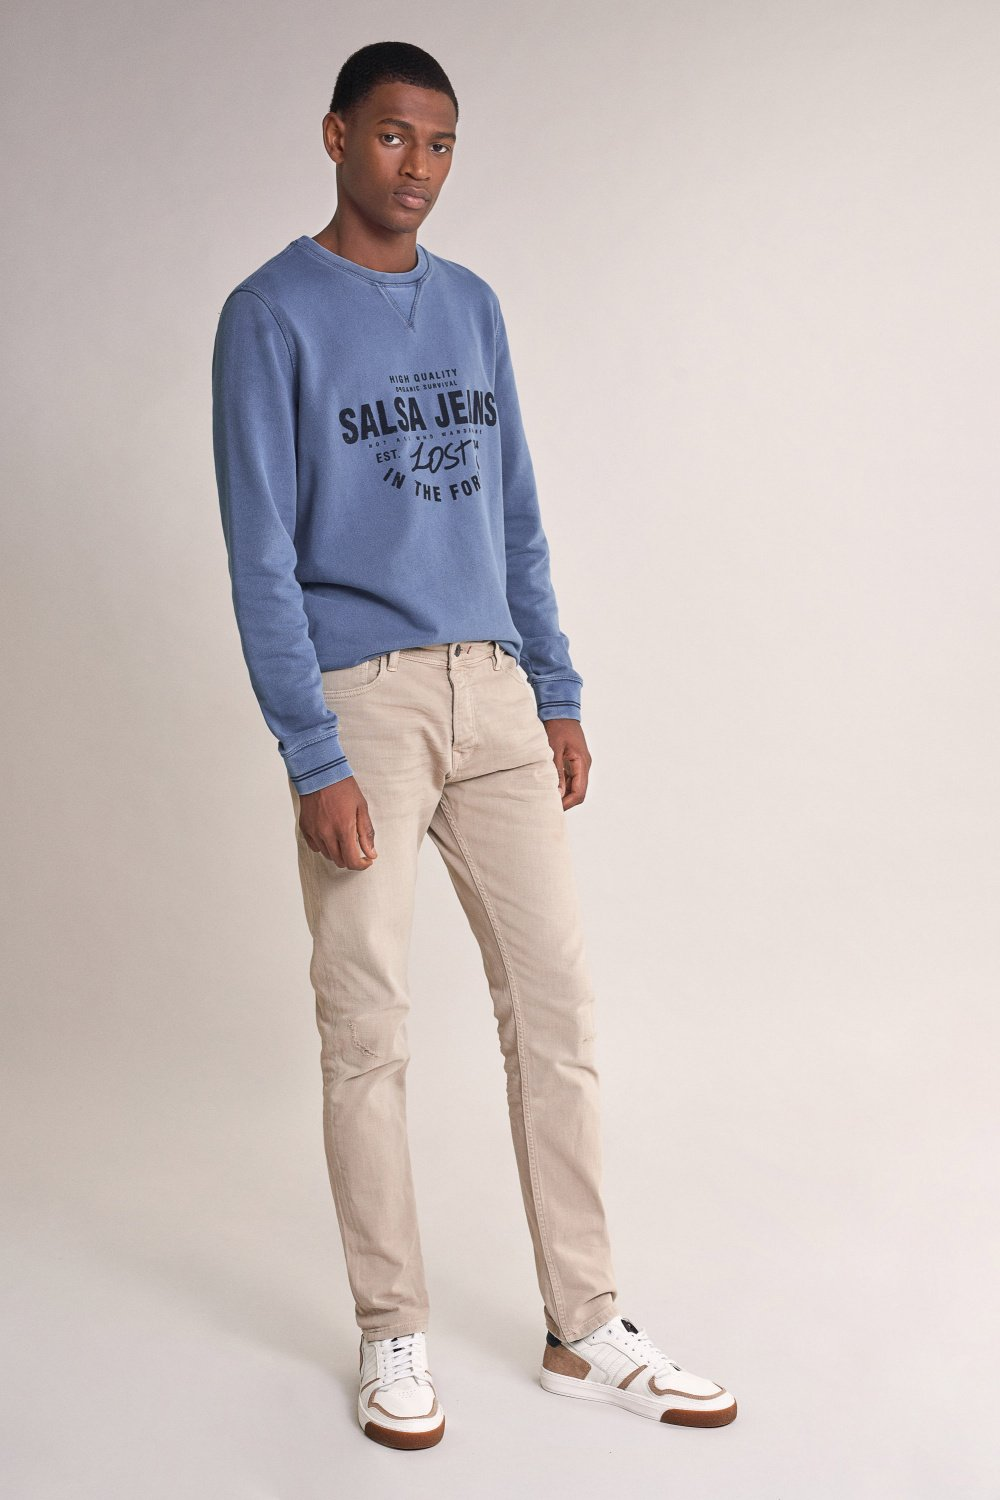 Clash slim carrot jeans with rips - Salsa